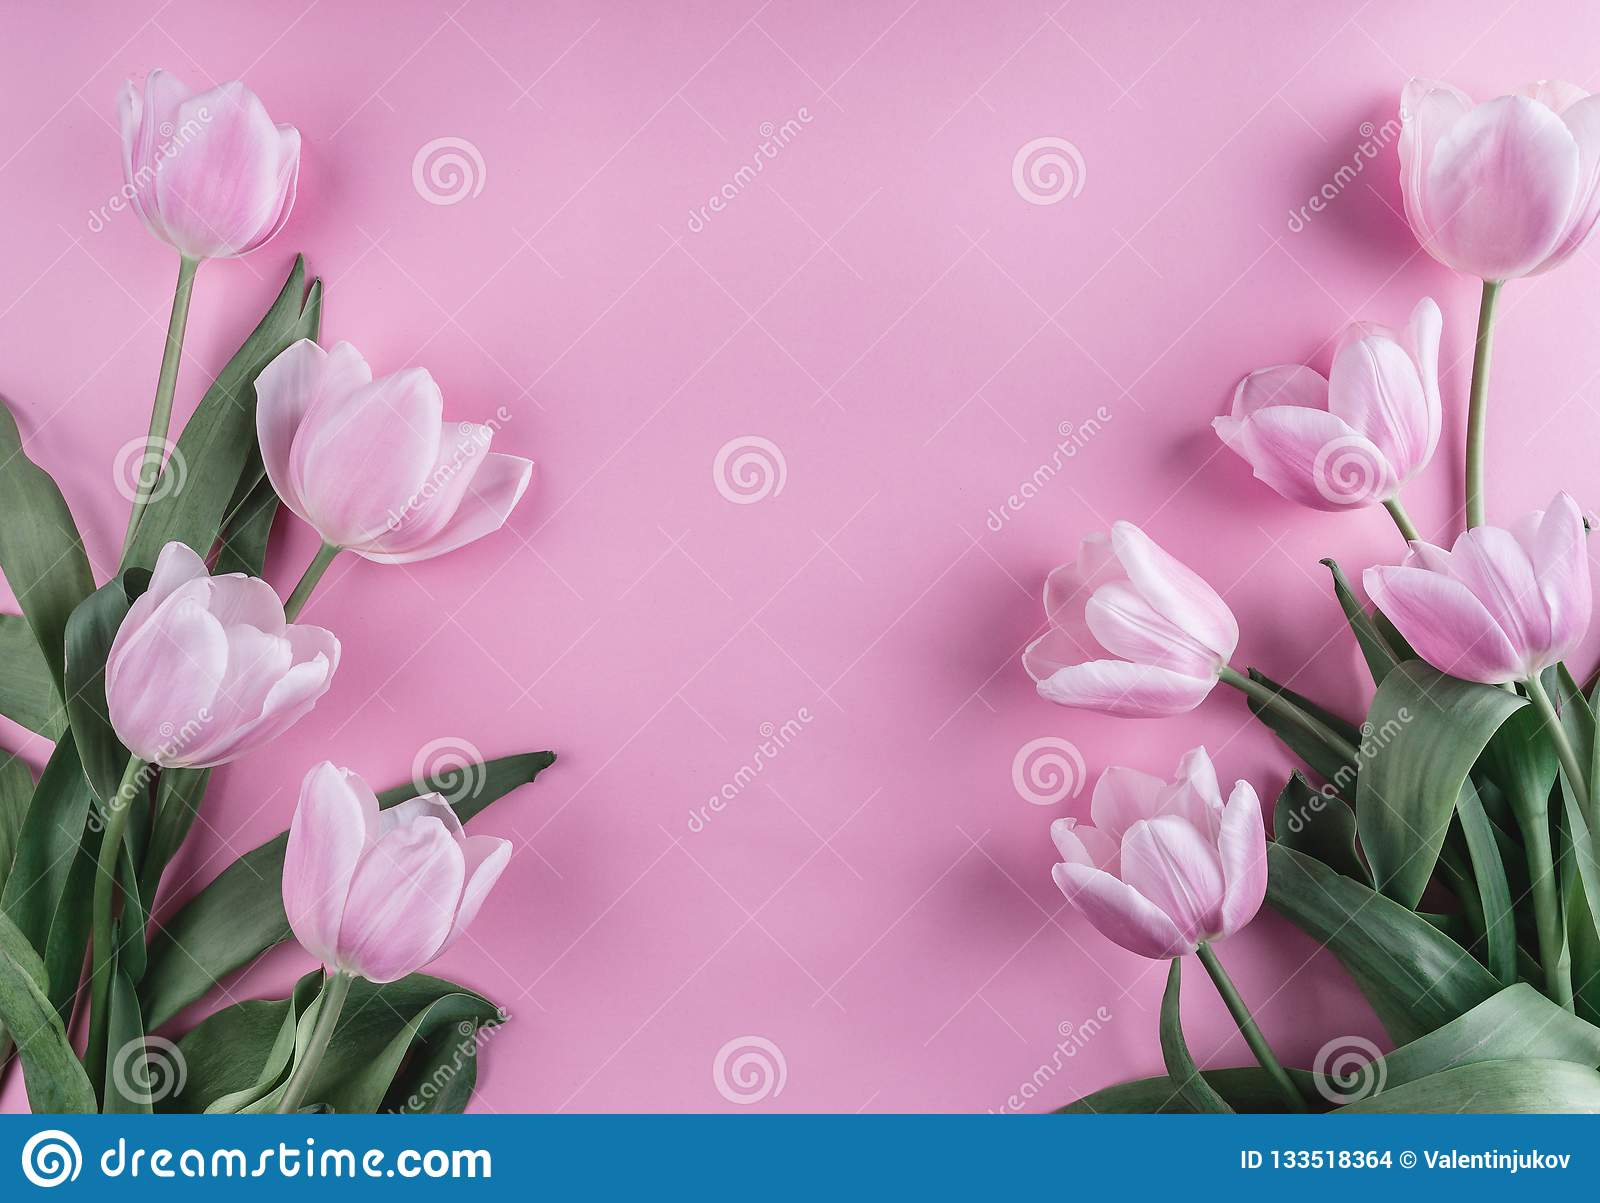 Pink tulips flowers over light pink background. Greeting card or wedding invitation. Flat lay, top view